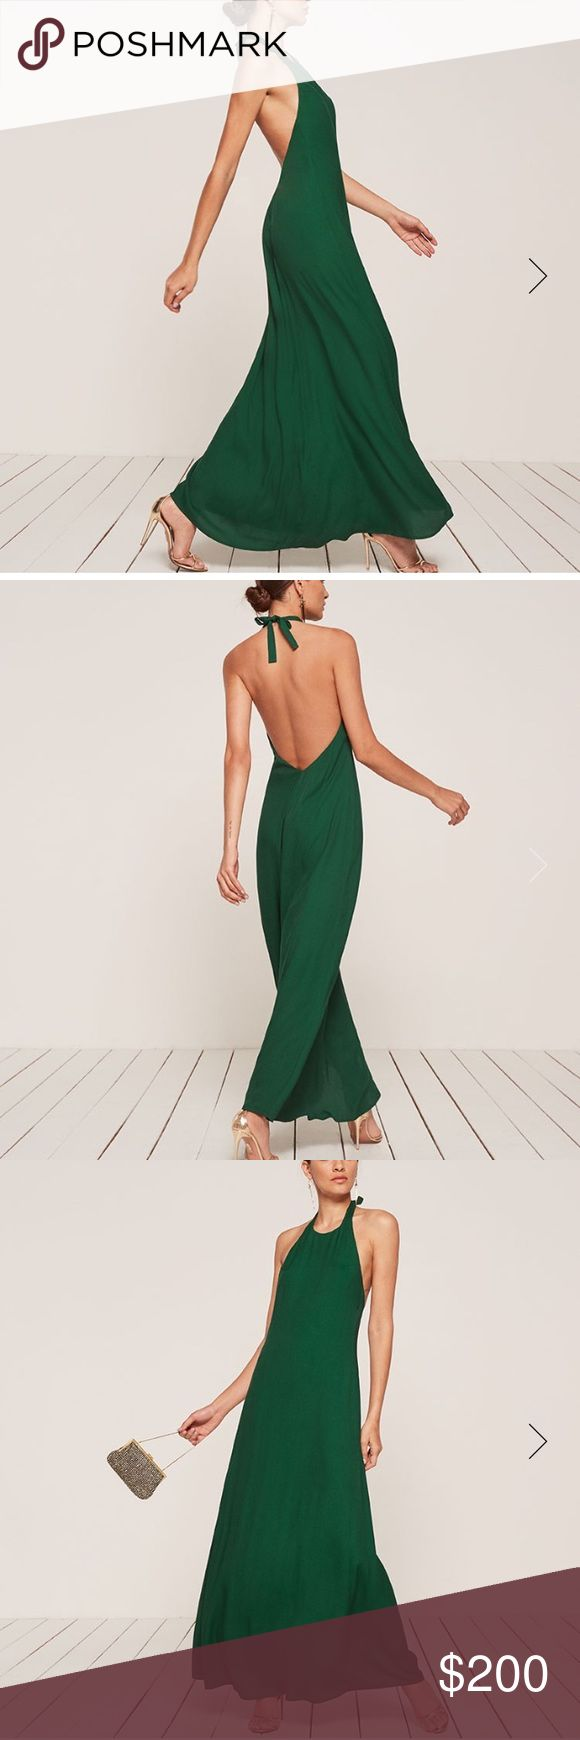 "Bought online in 2 sizes and didn't return in time Ana dress from Reformation. This is a super sexy and elegant maxi halter dress w a high neckline and low back. Never worn, all tags still attached. I ordered 2 sizes online and didn't return the other in time for them to refund me...so am now trying to get rid of it! Absolutely stunning on- I'm on the taller side at 5'10"" and it's perfect on me. I'm sure it can be hemmed, too! Reformation Dresses Maxi"